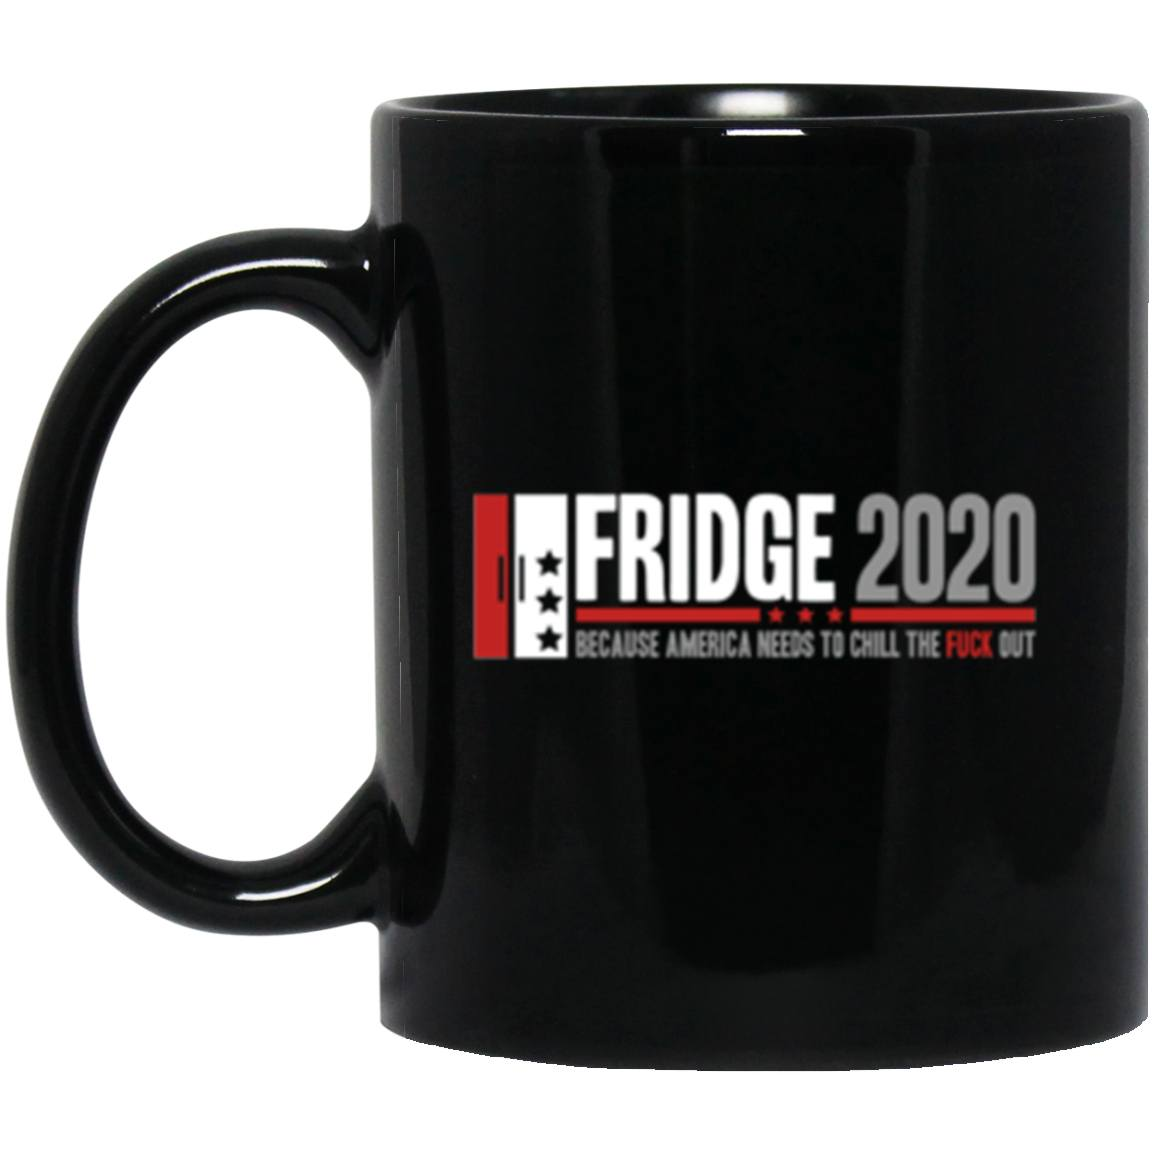 Drinkware - Fridge 2020 Black Mug 11oz (2-sided)